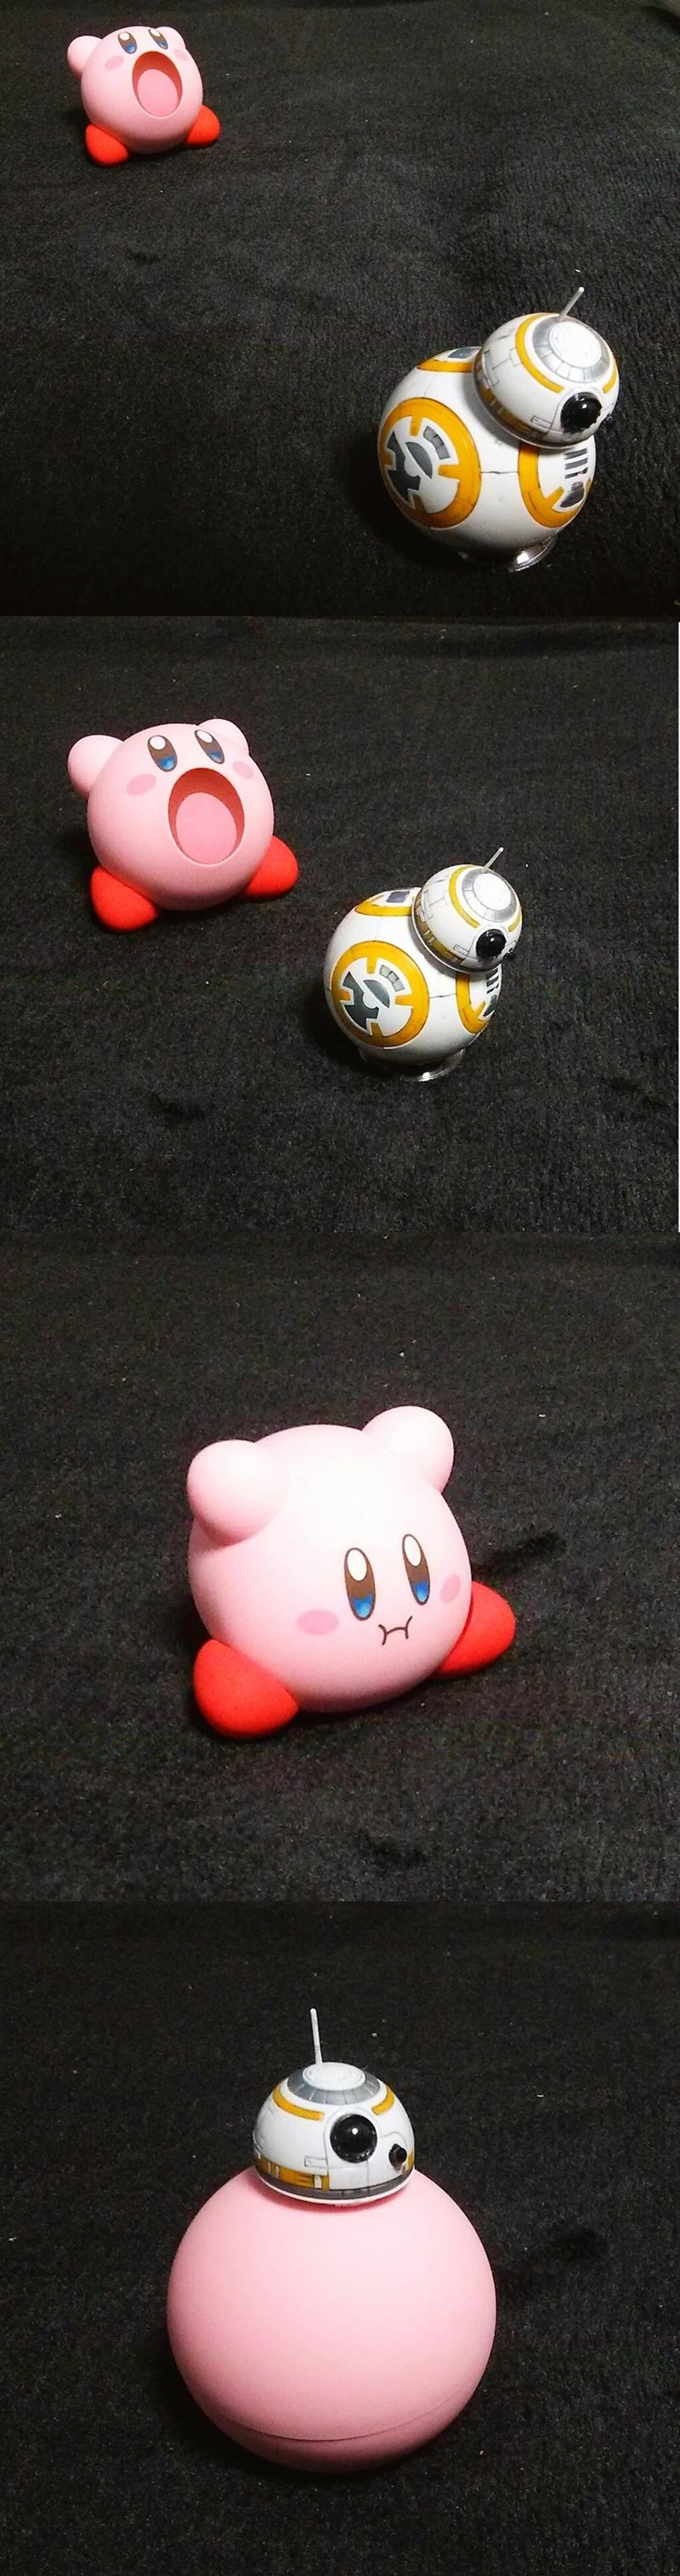 kirby bb 8 star wars vii - 8746499072